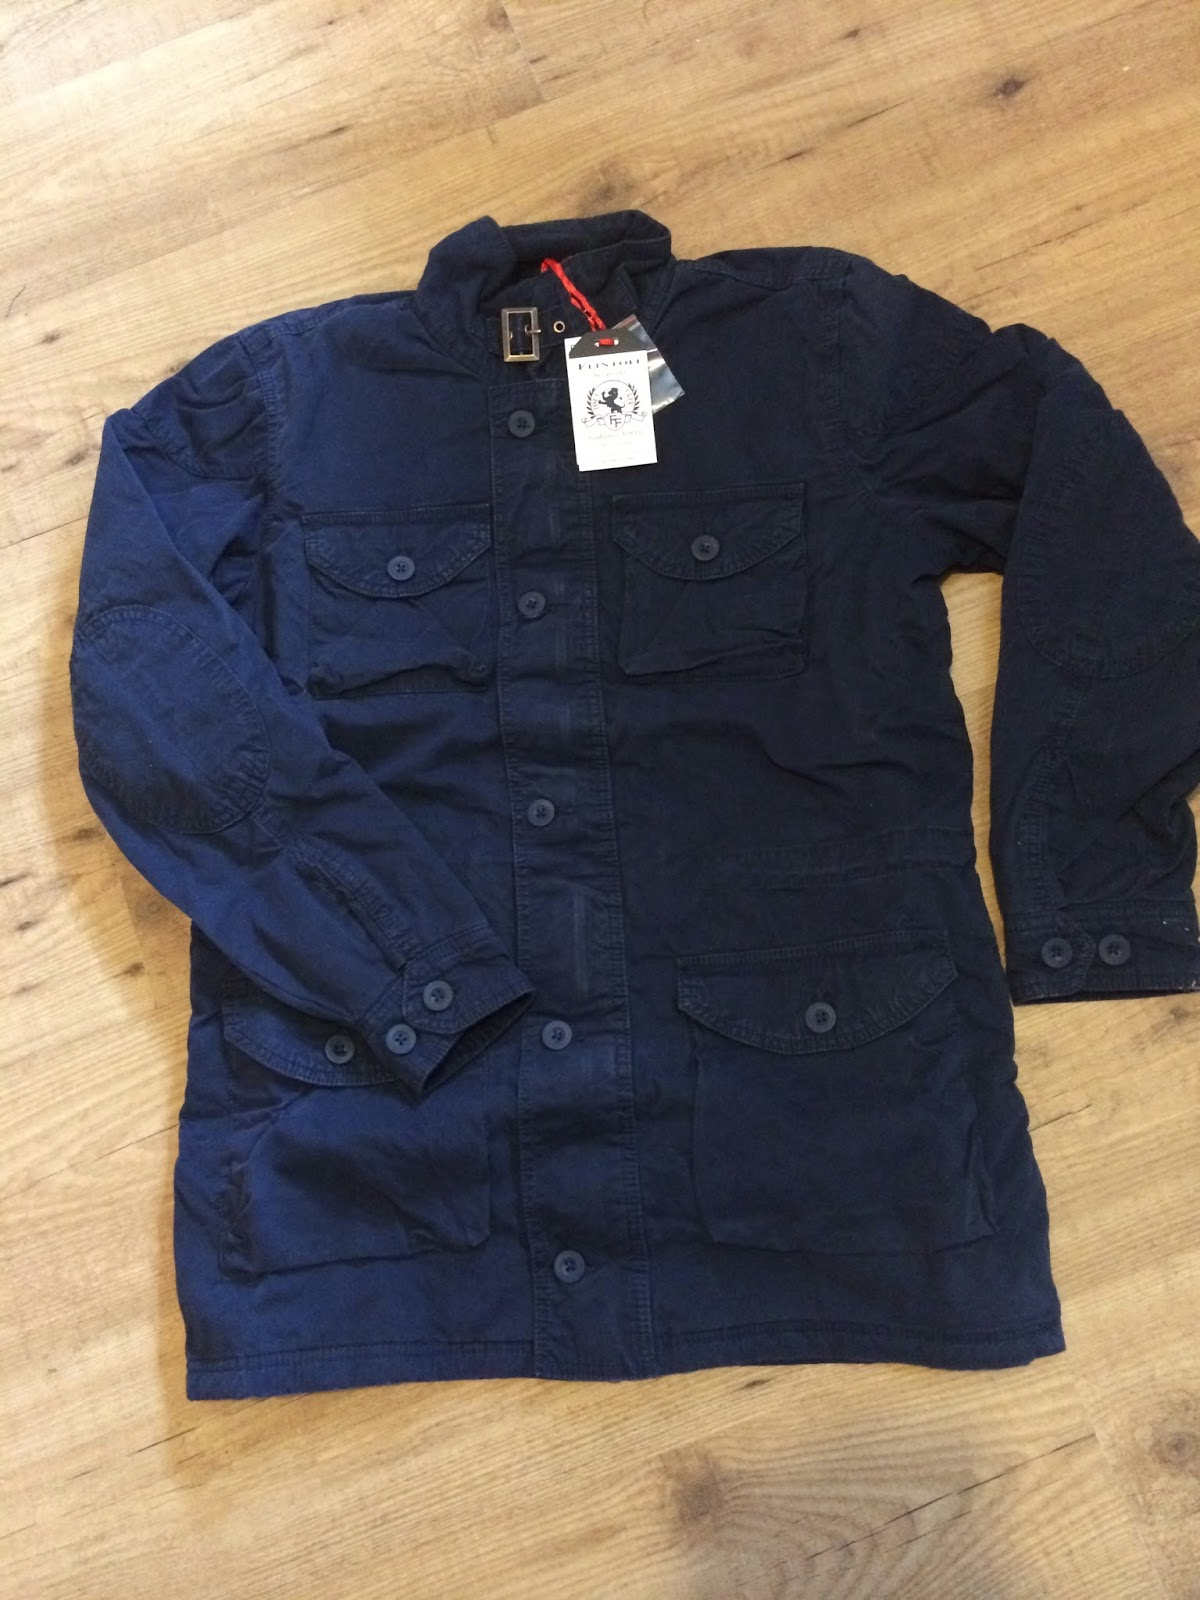 navy military jacket from Flintoff by Jacamo